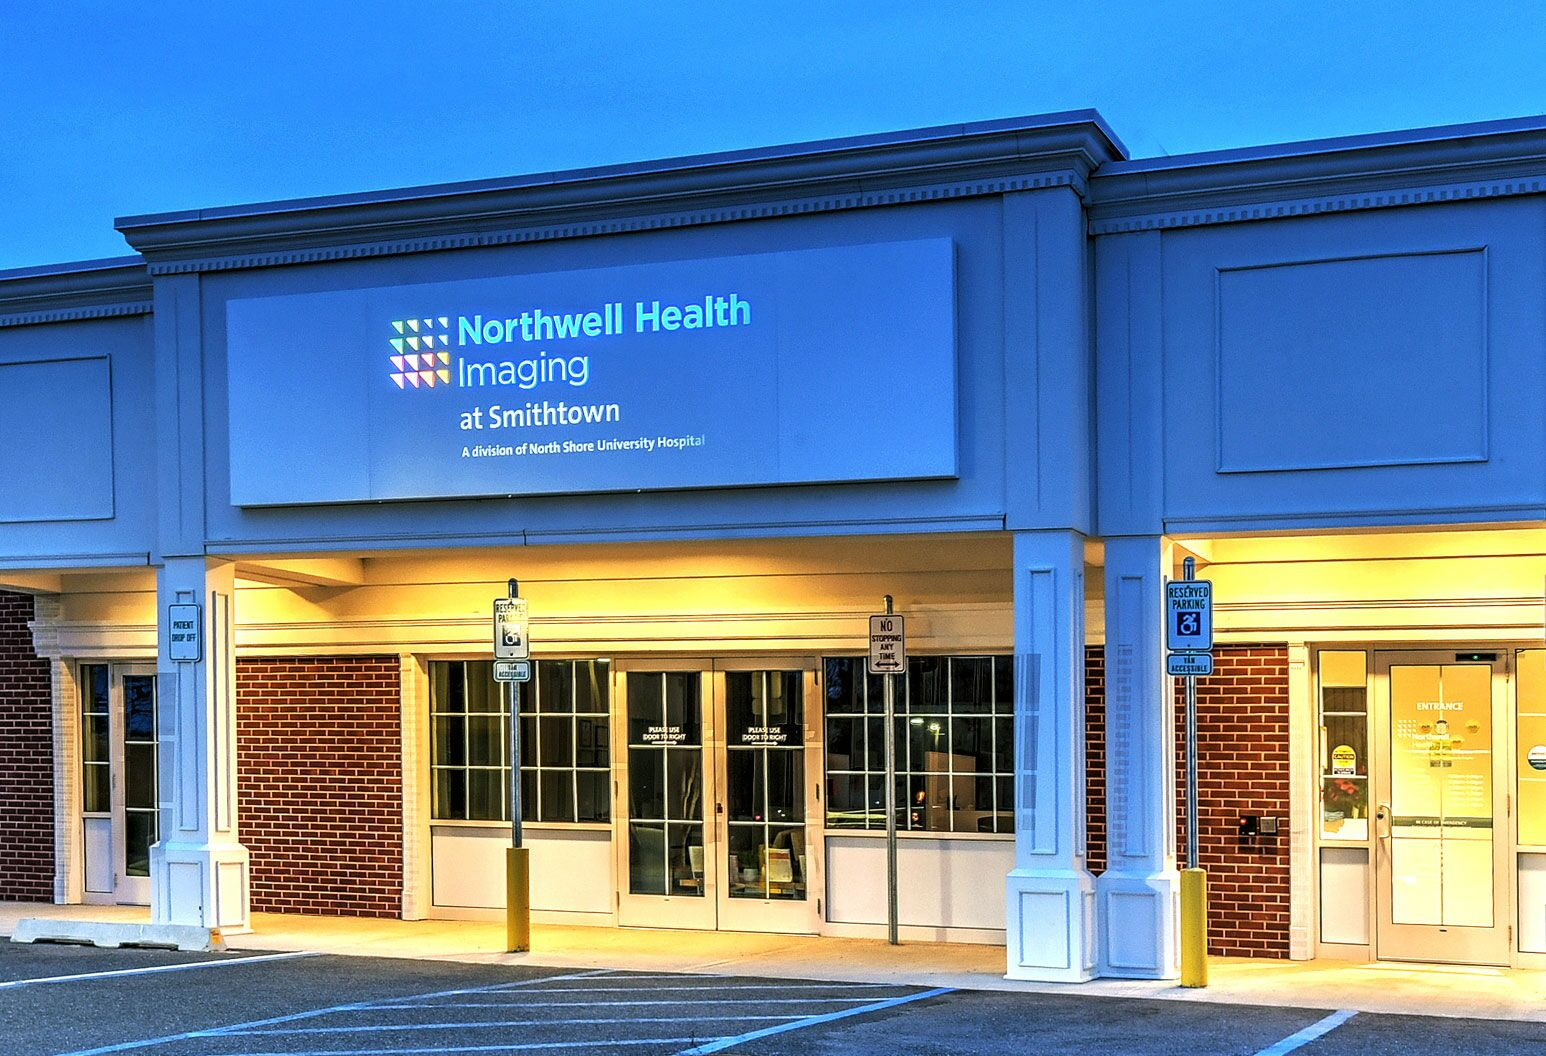 Exterior shot at dusk of Northwell Health Imaging at Smithtown.